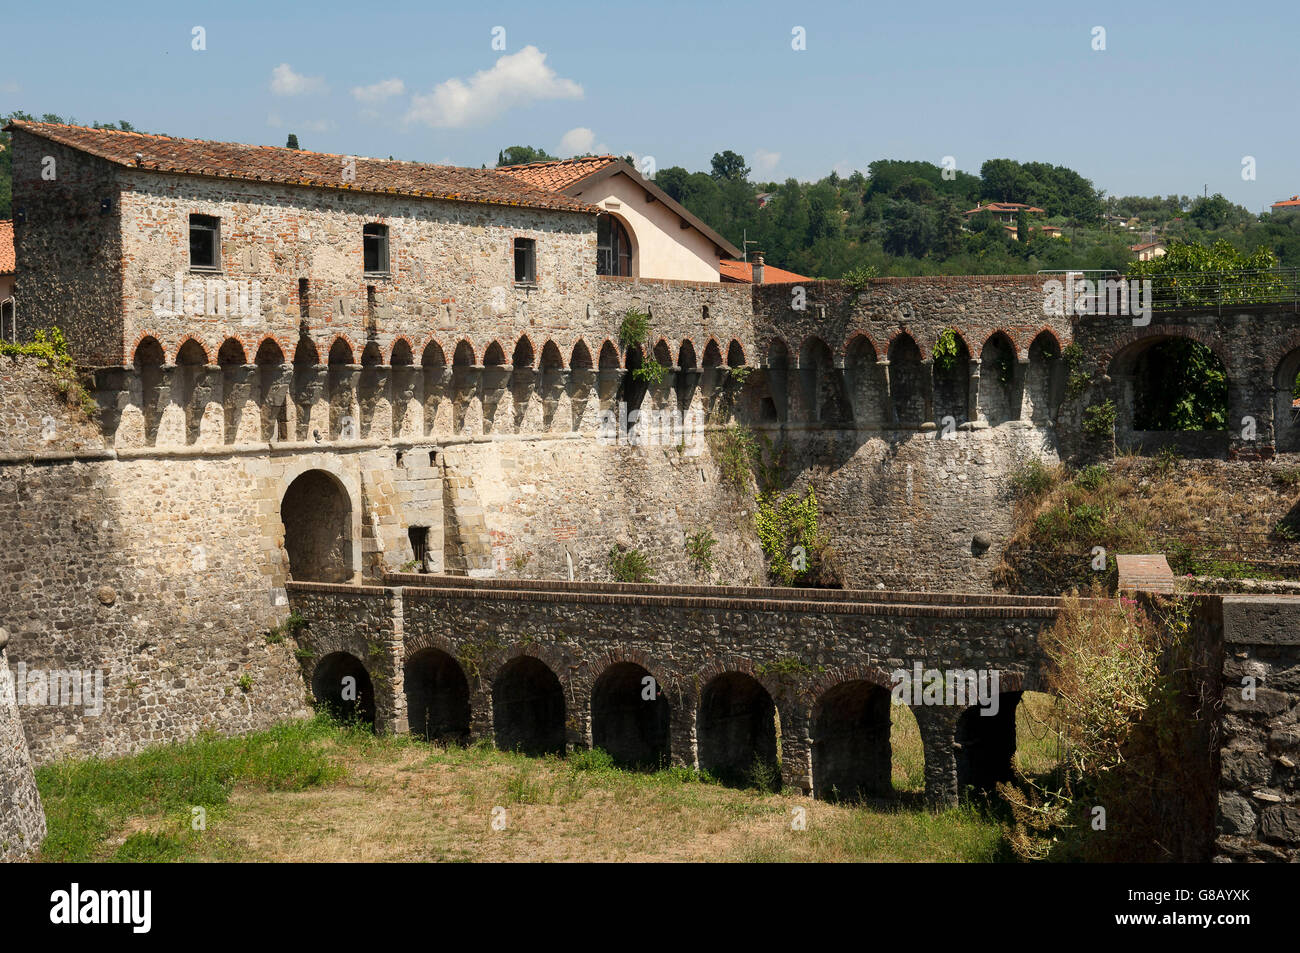 view of round dungeon on ancient Castle dry moat, shot on a sunny spring day, Sarzana, Liguria, Italy - Stock Image